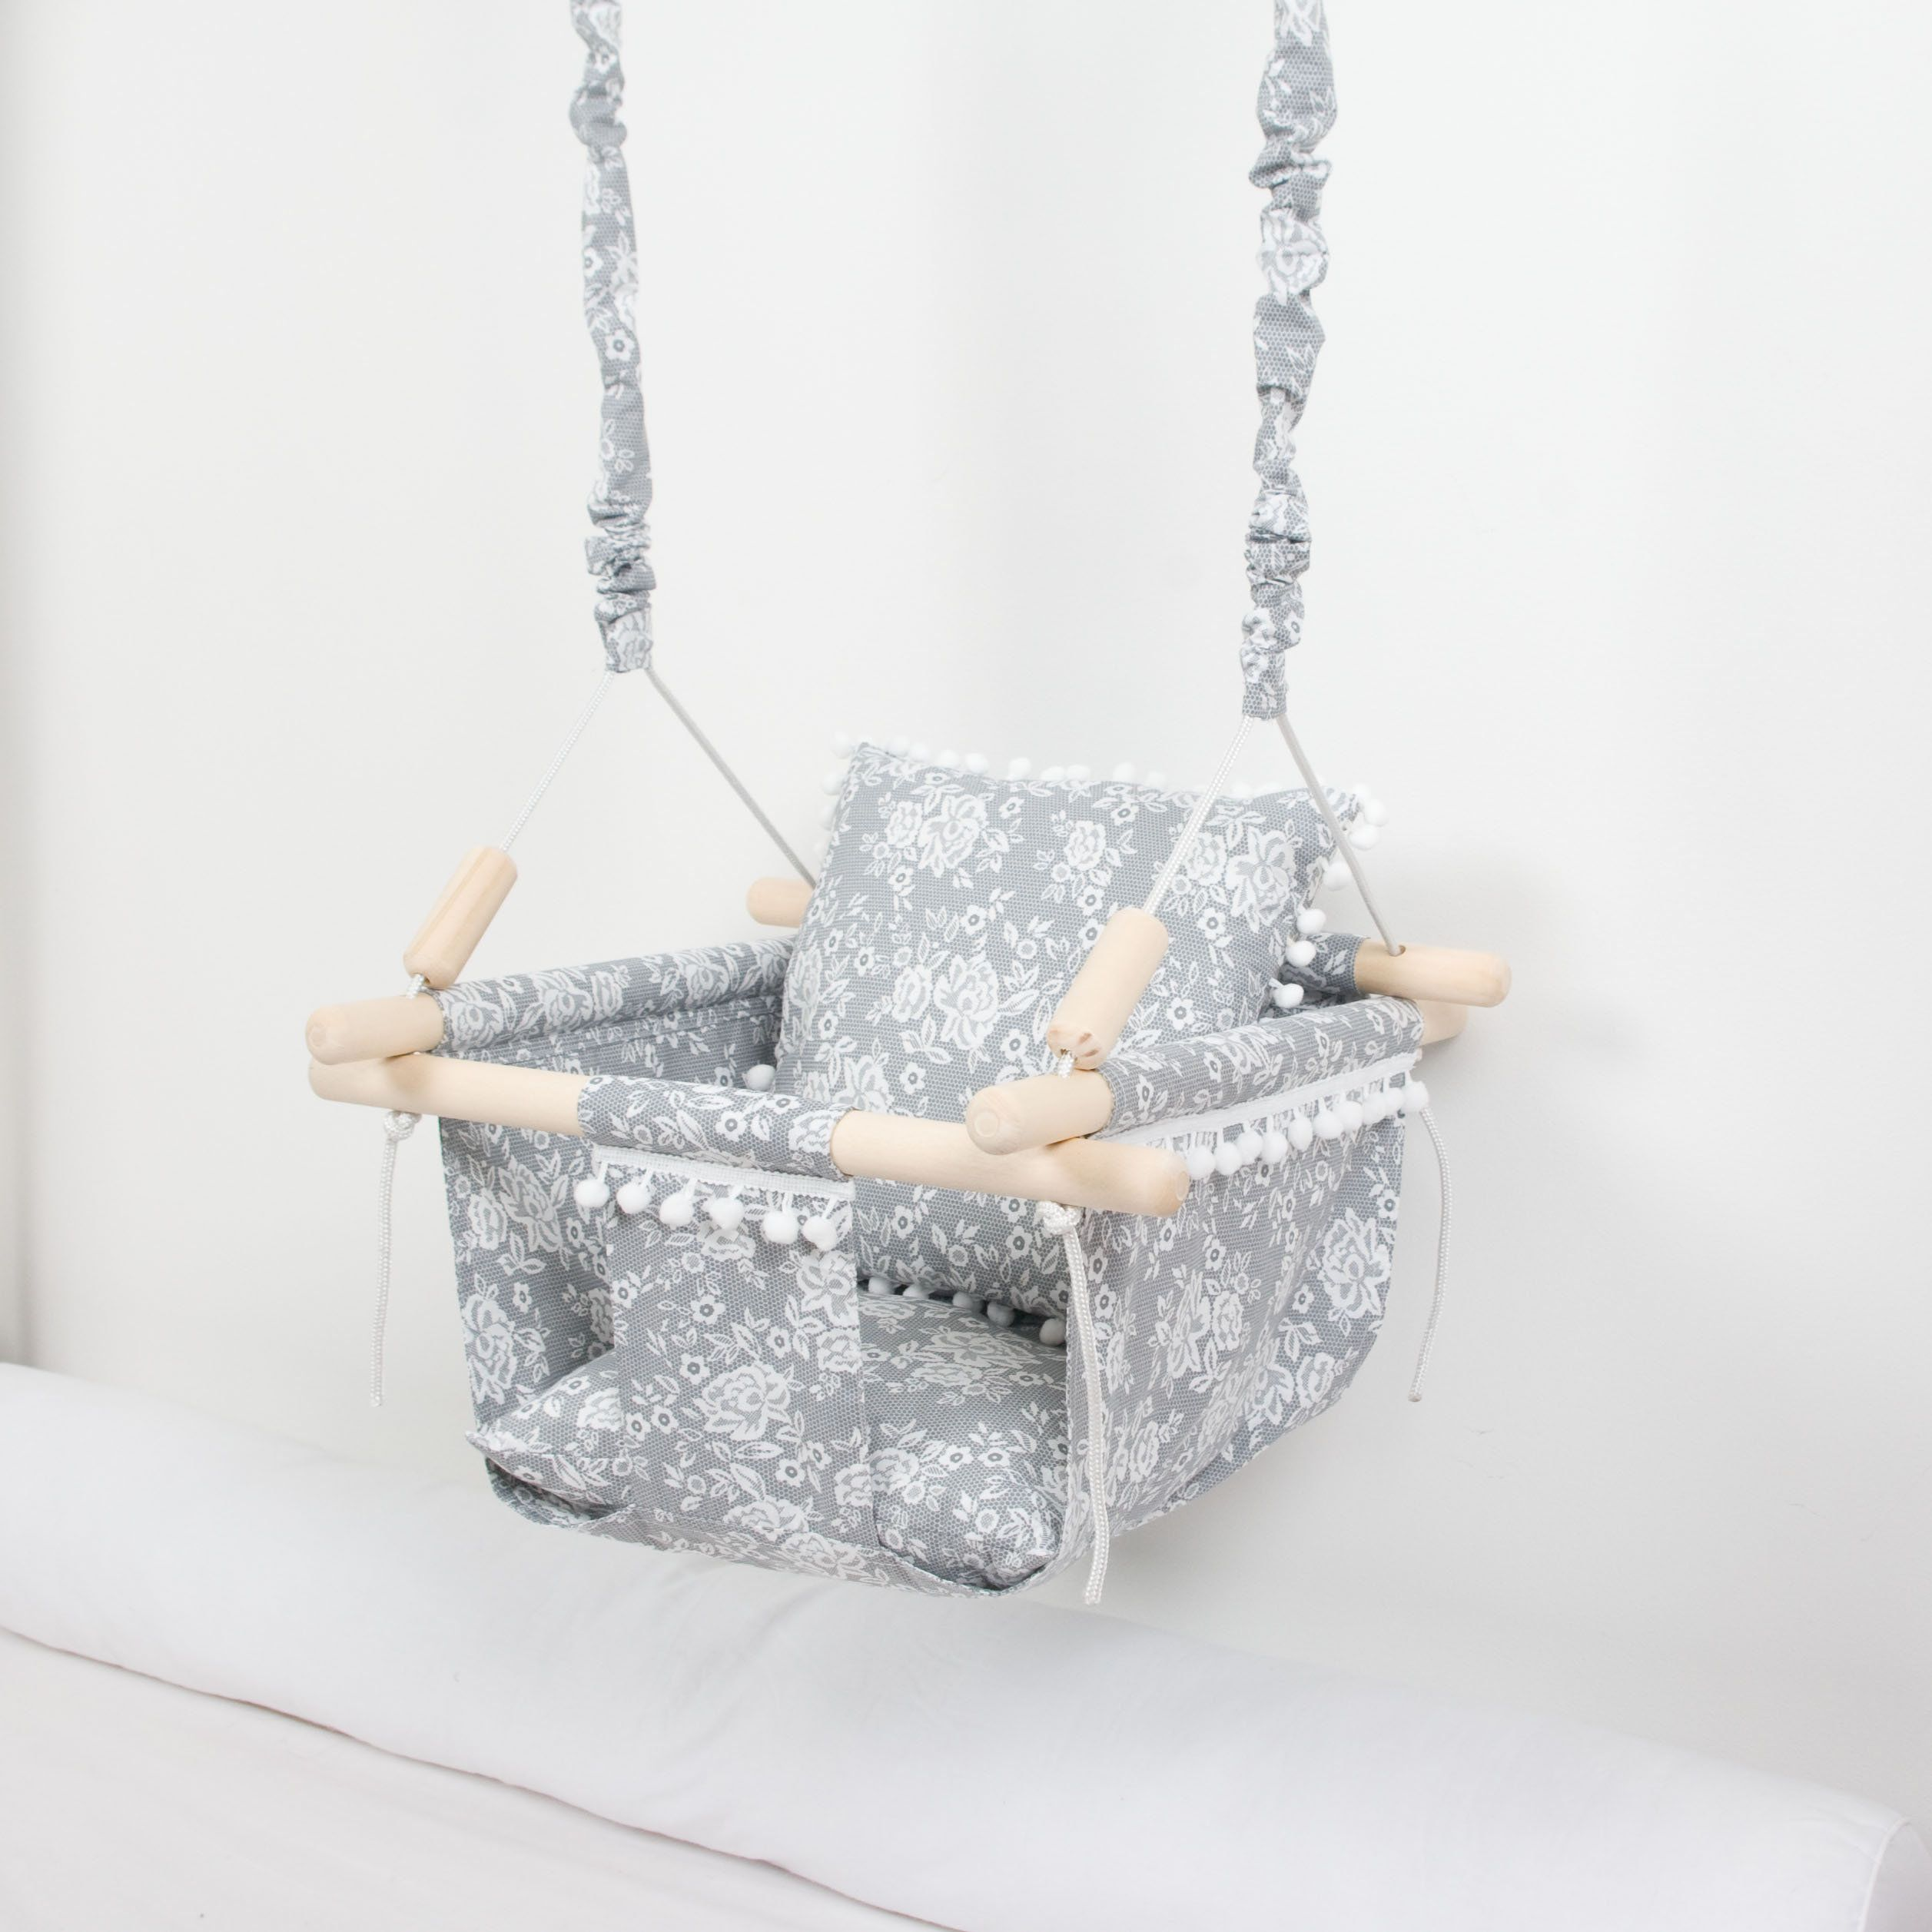 hammock baby swing indoor swing baby shower gift Baby or toddler swing fabric swing swing chair cotton fabric swing wood wooden